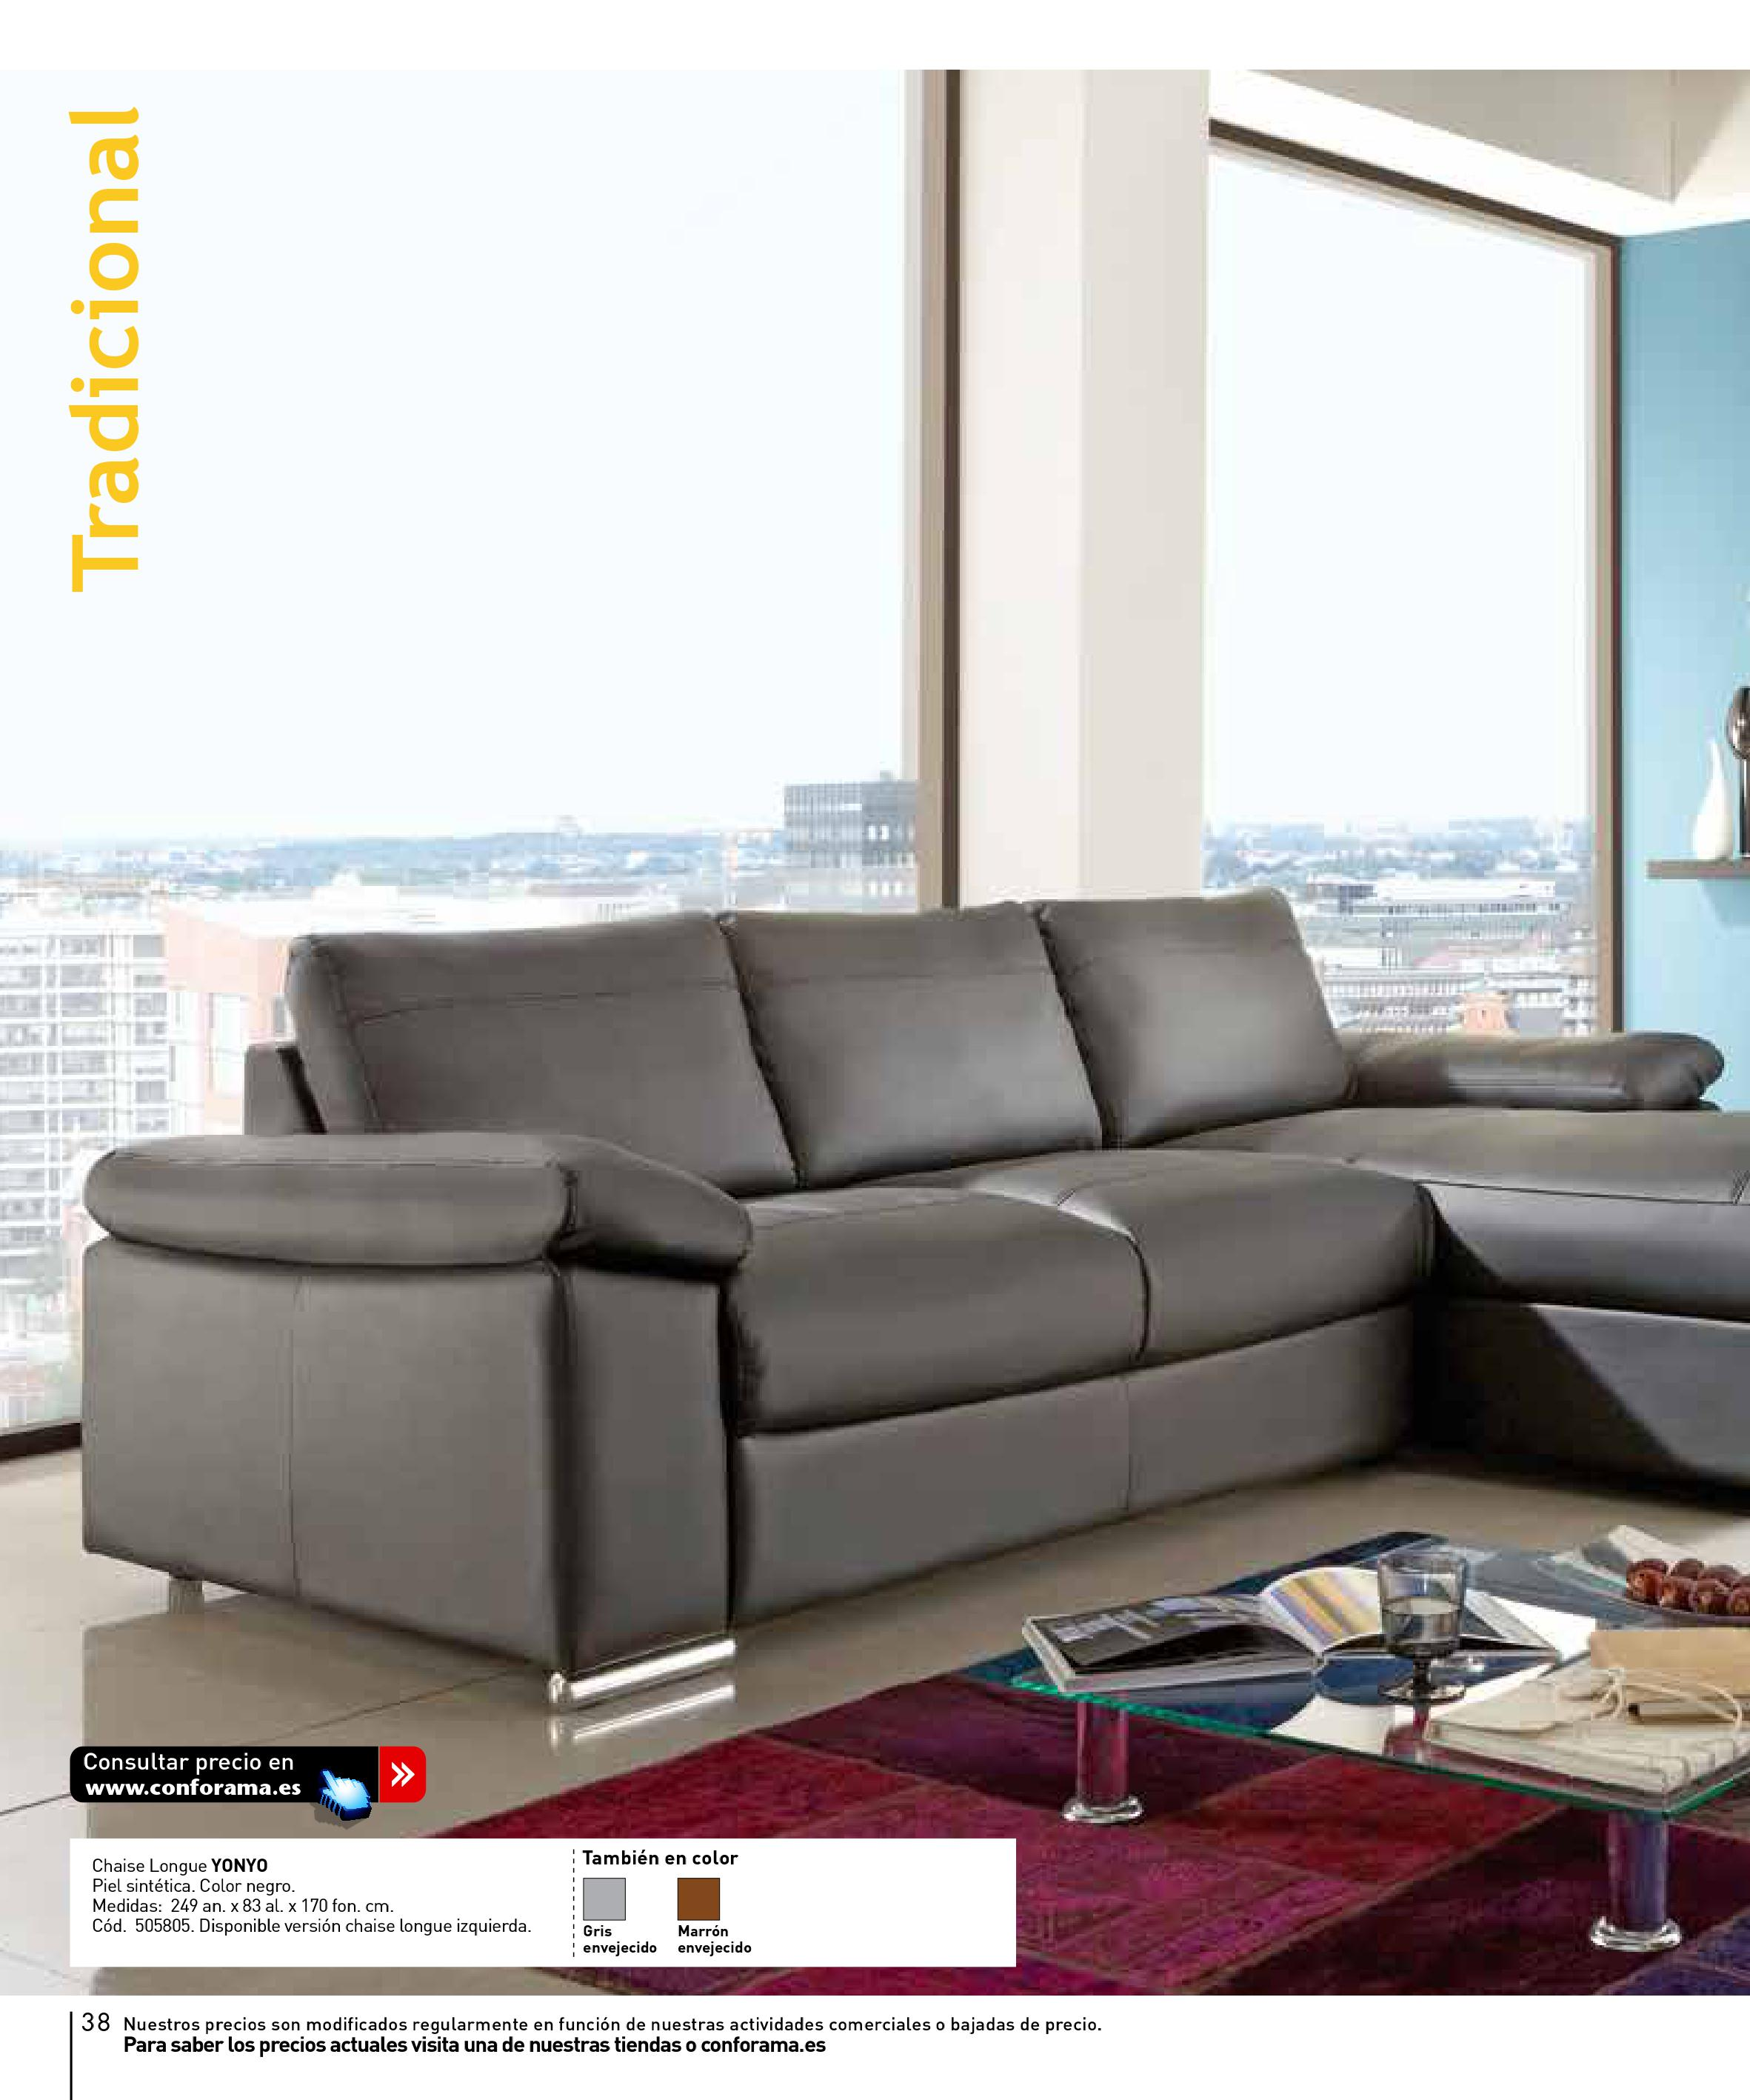 Sofas conforama 201538 for Sofas conforama catalogo